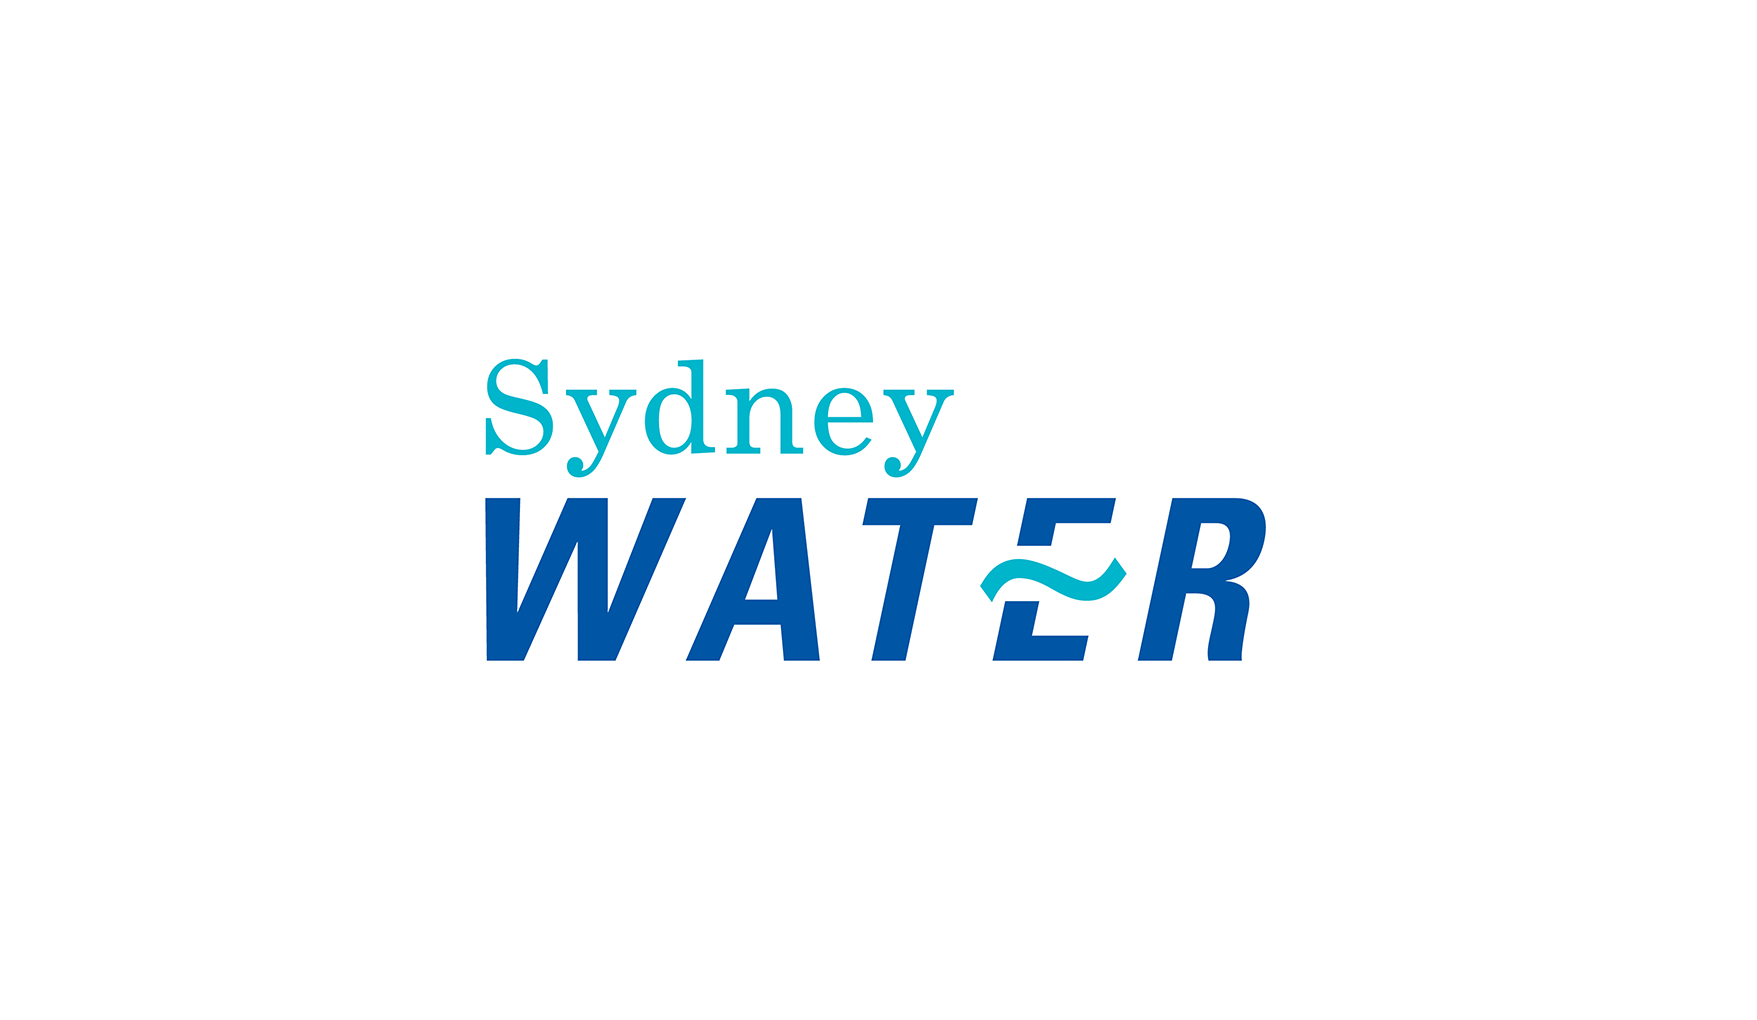 Sydney Water Major Works Accredited Watertight project